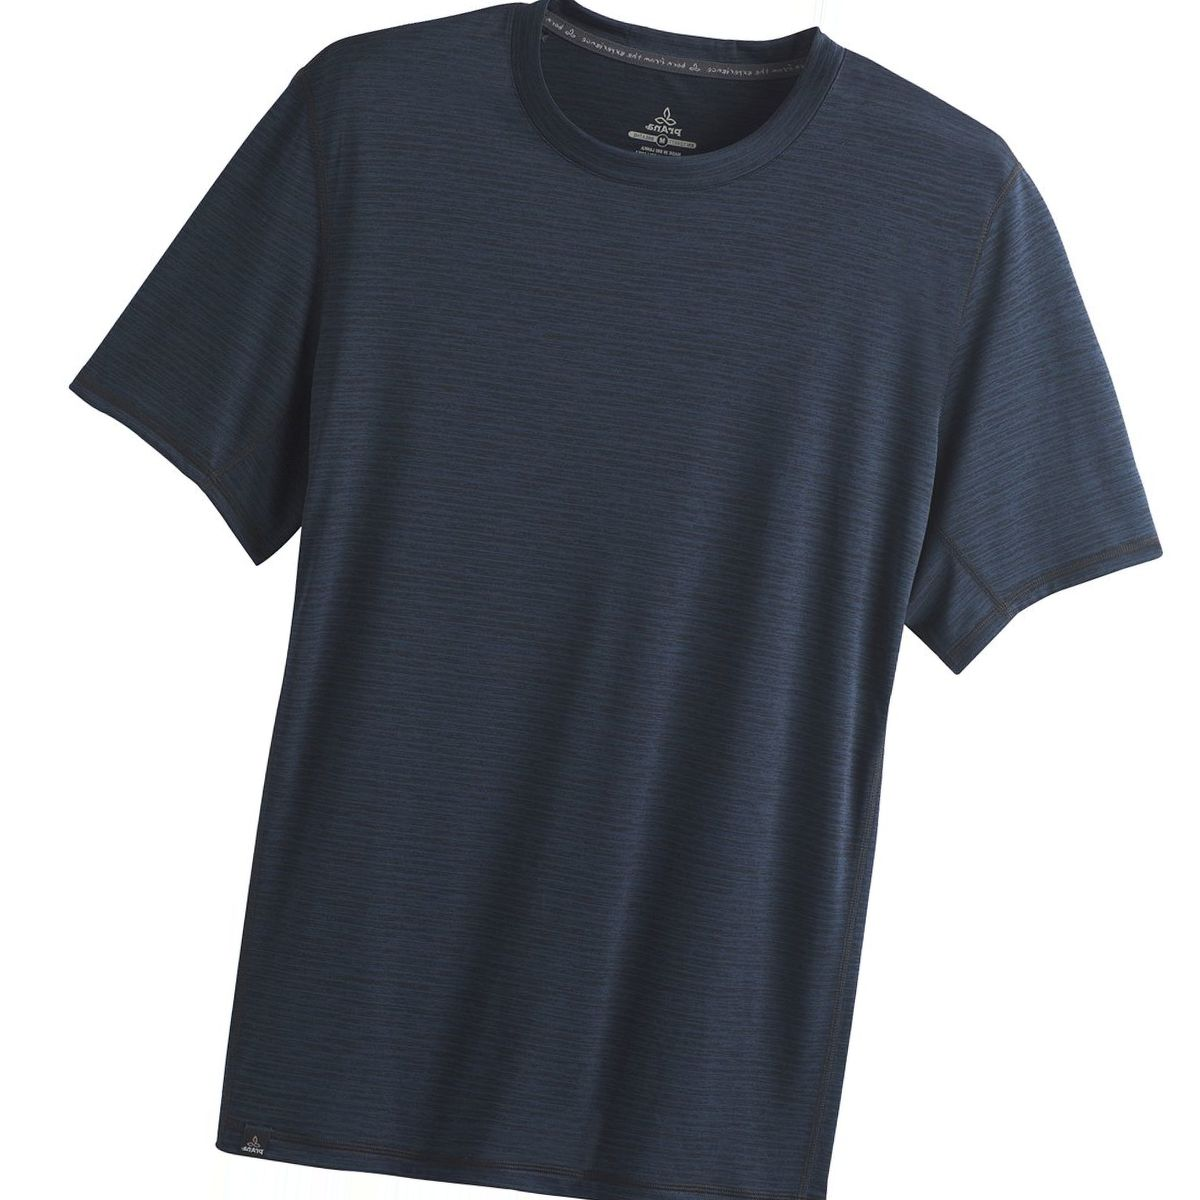 Prana Hardesty Short-Sleeve Shirt - Men's